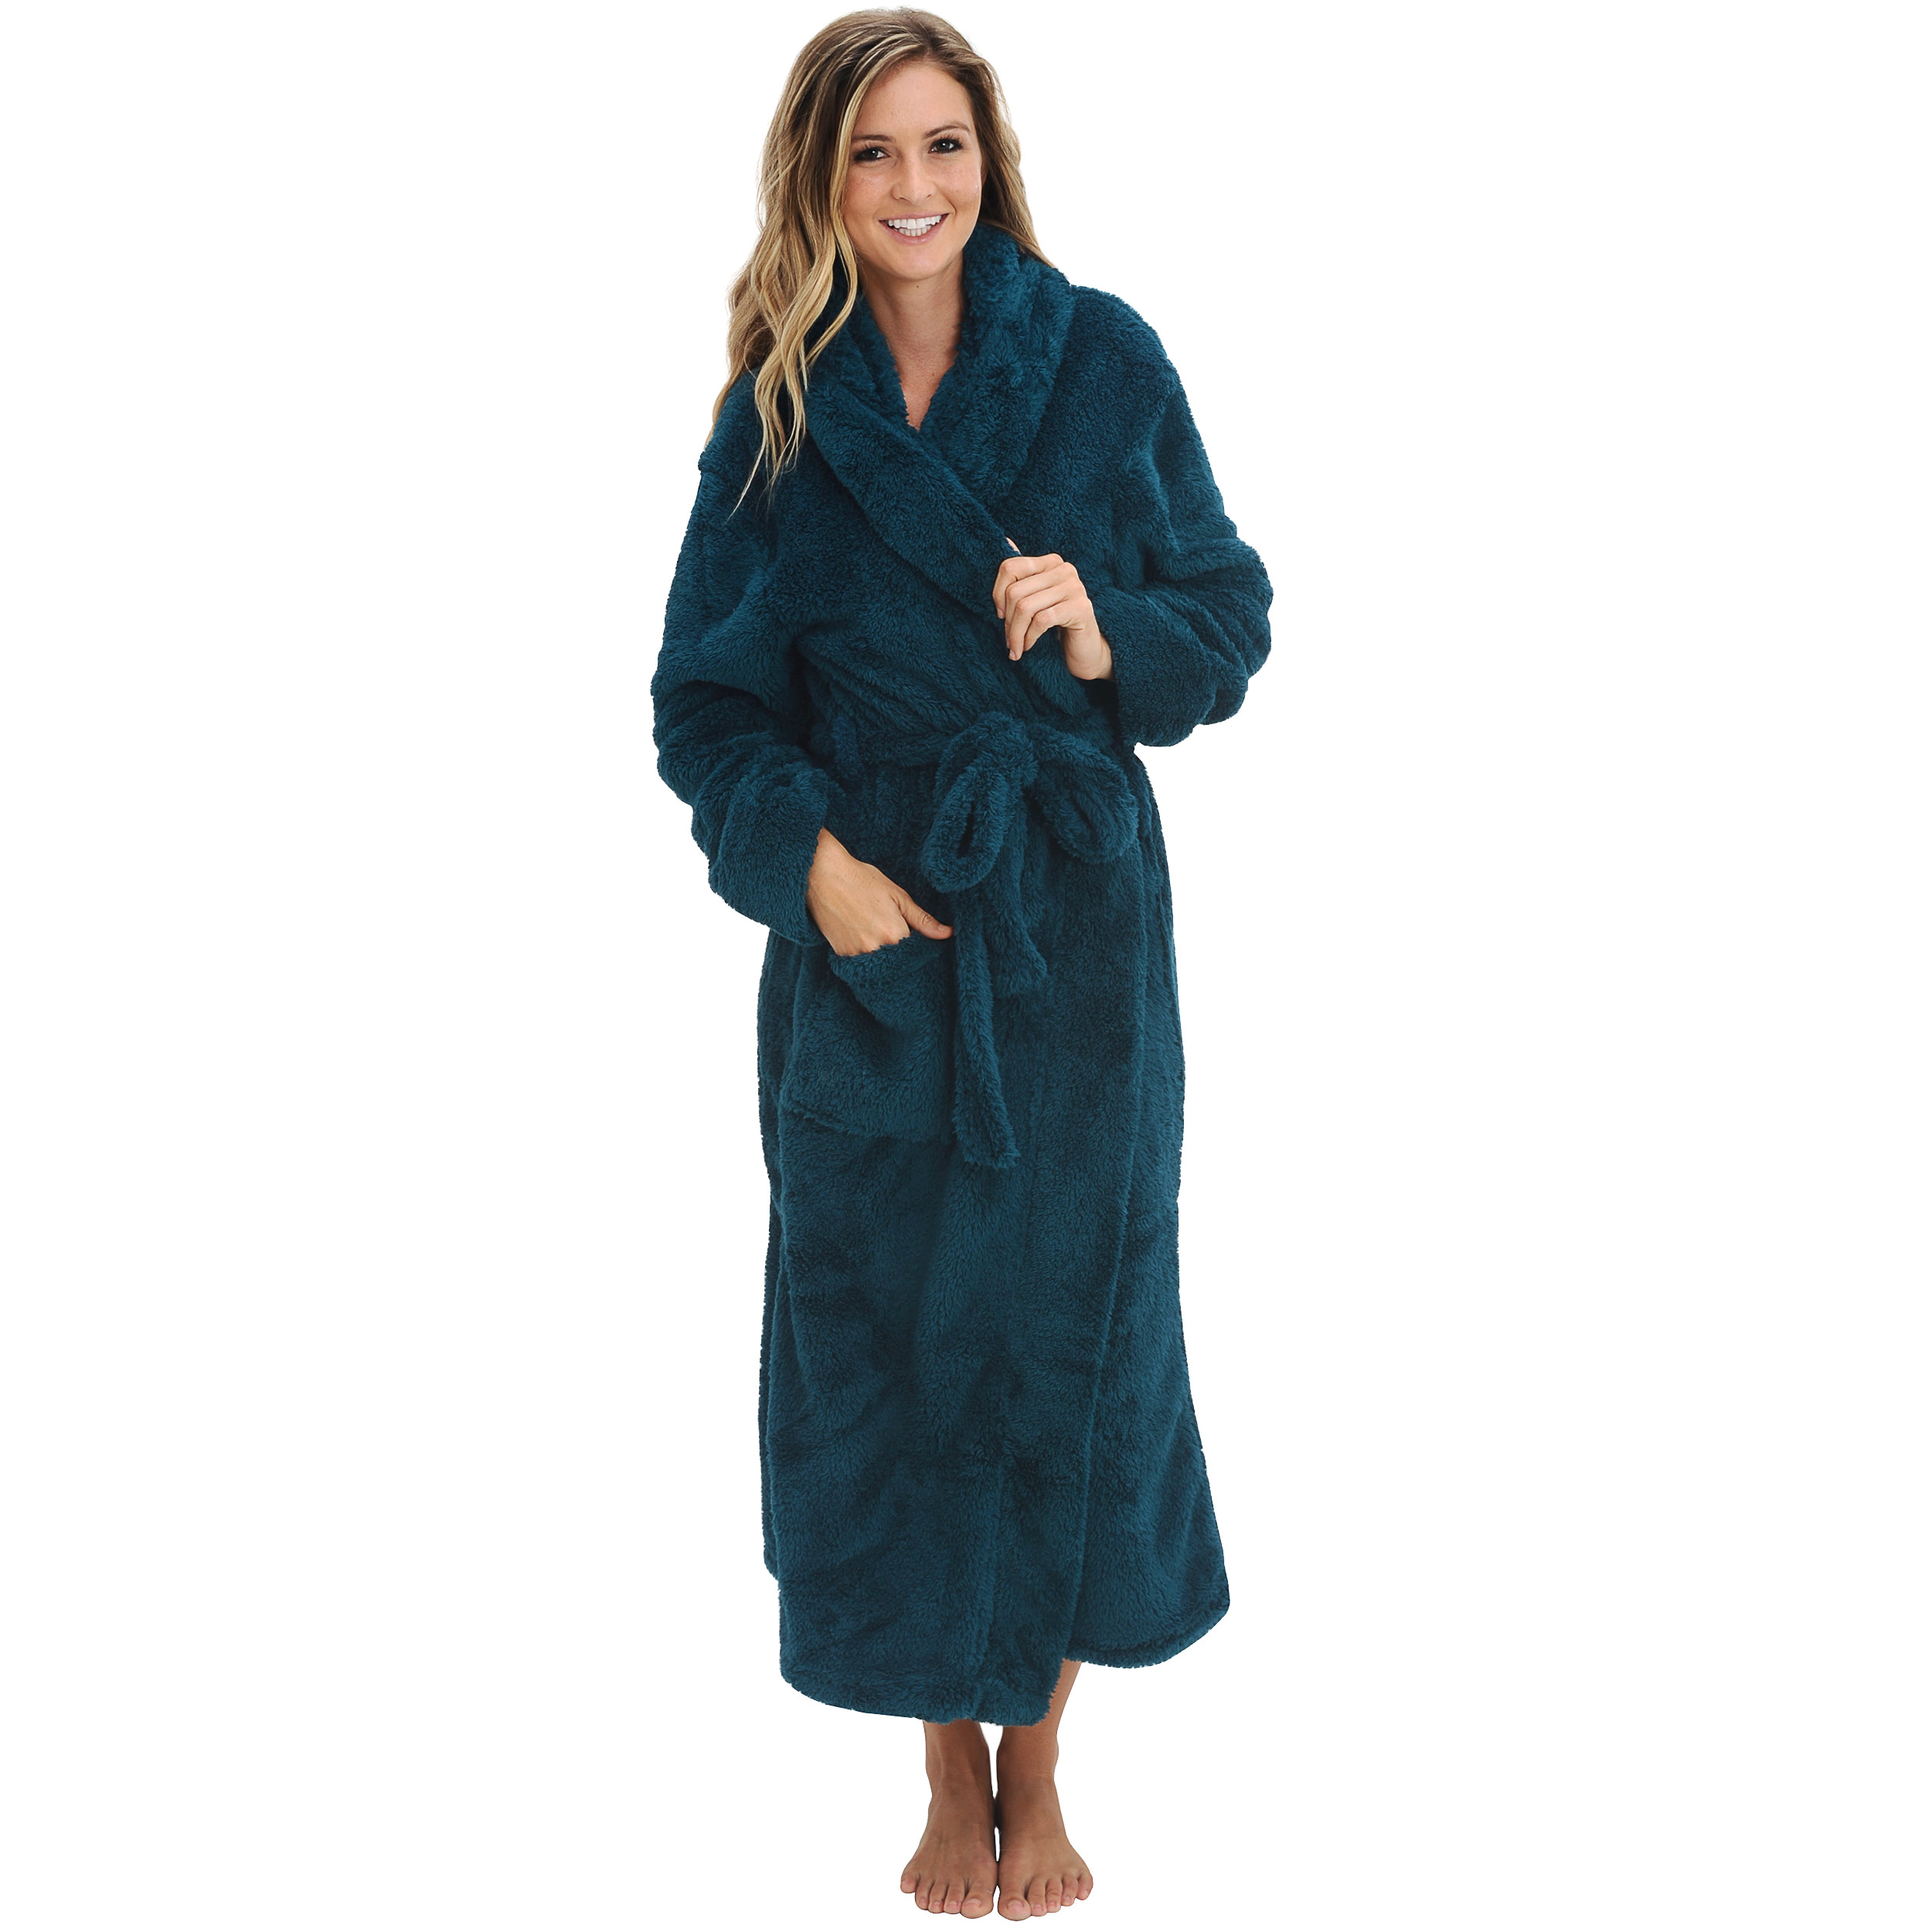 Comfy Robes | Plush Bathrobes | Monogram Bathrobe